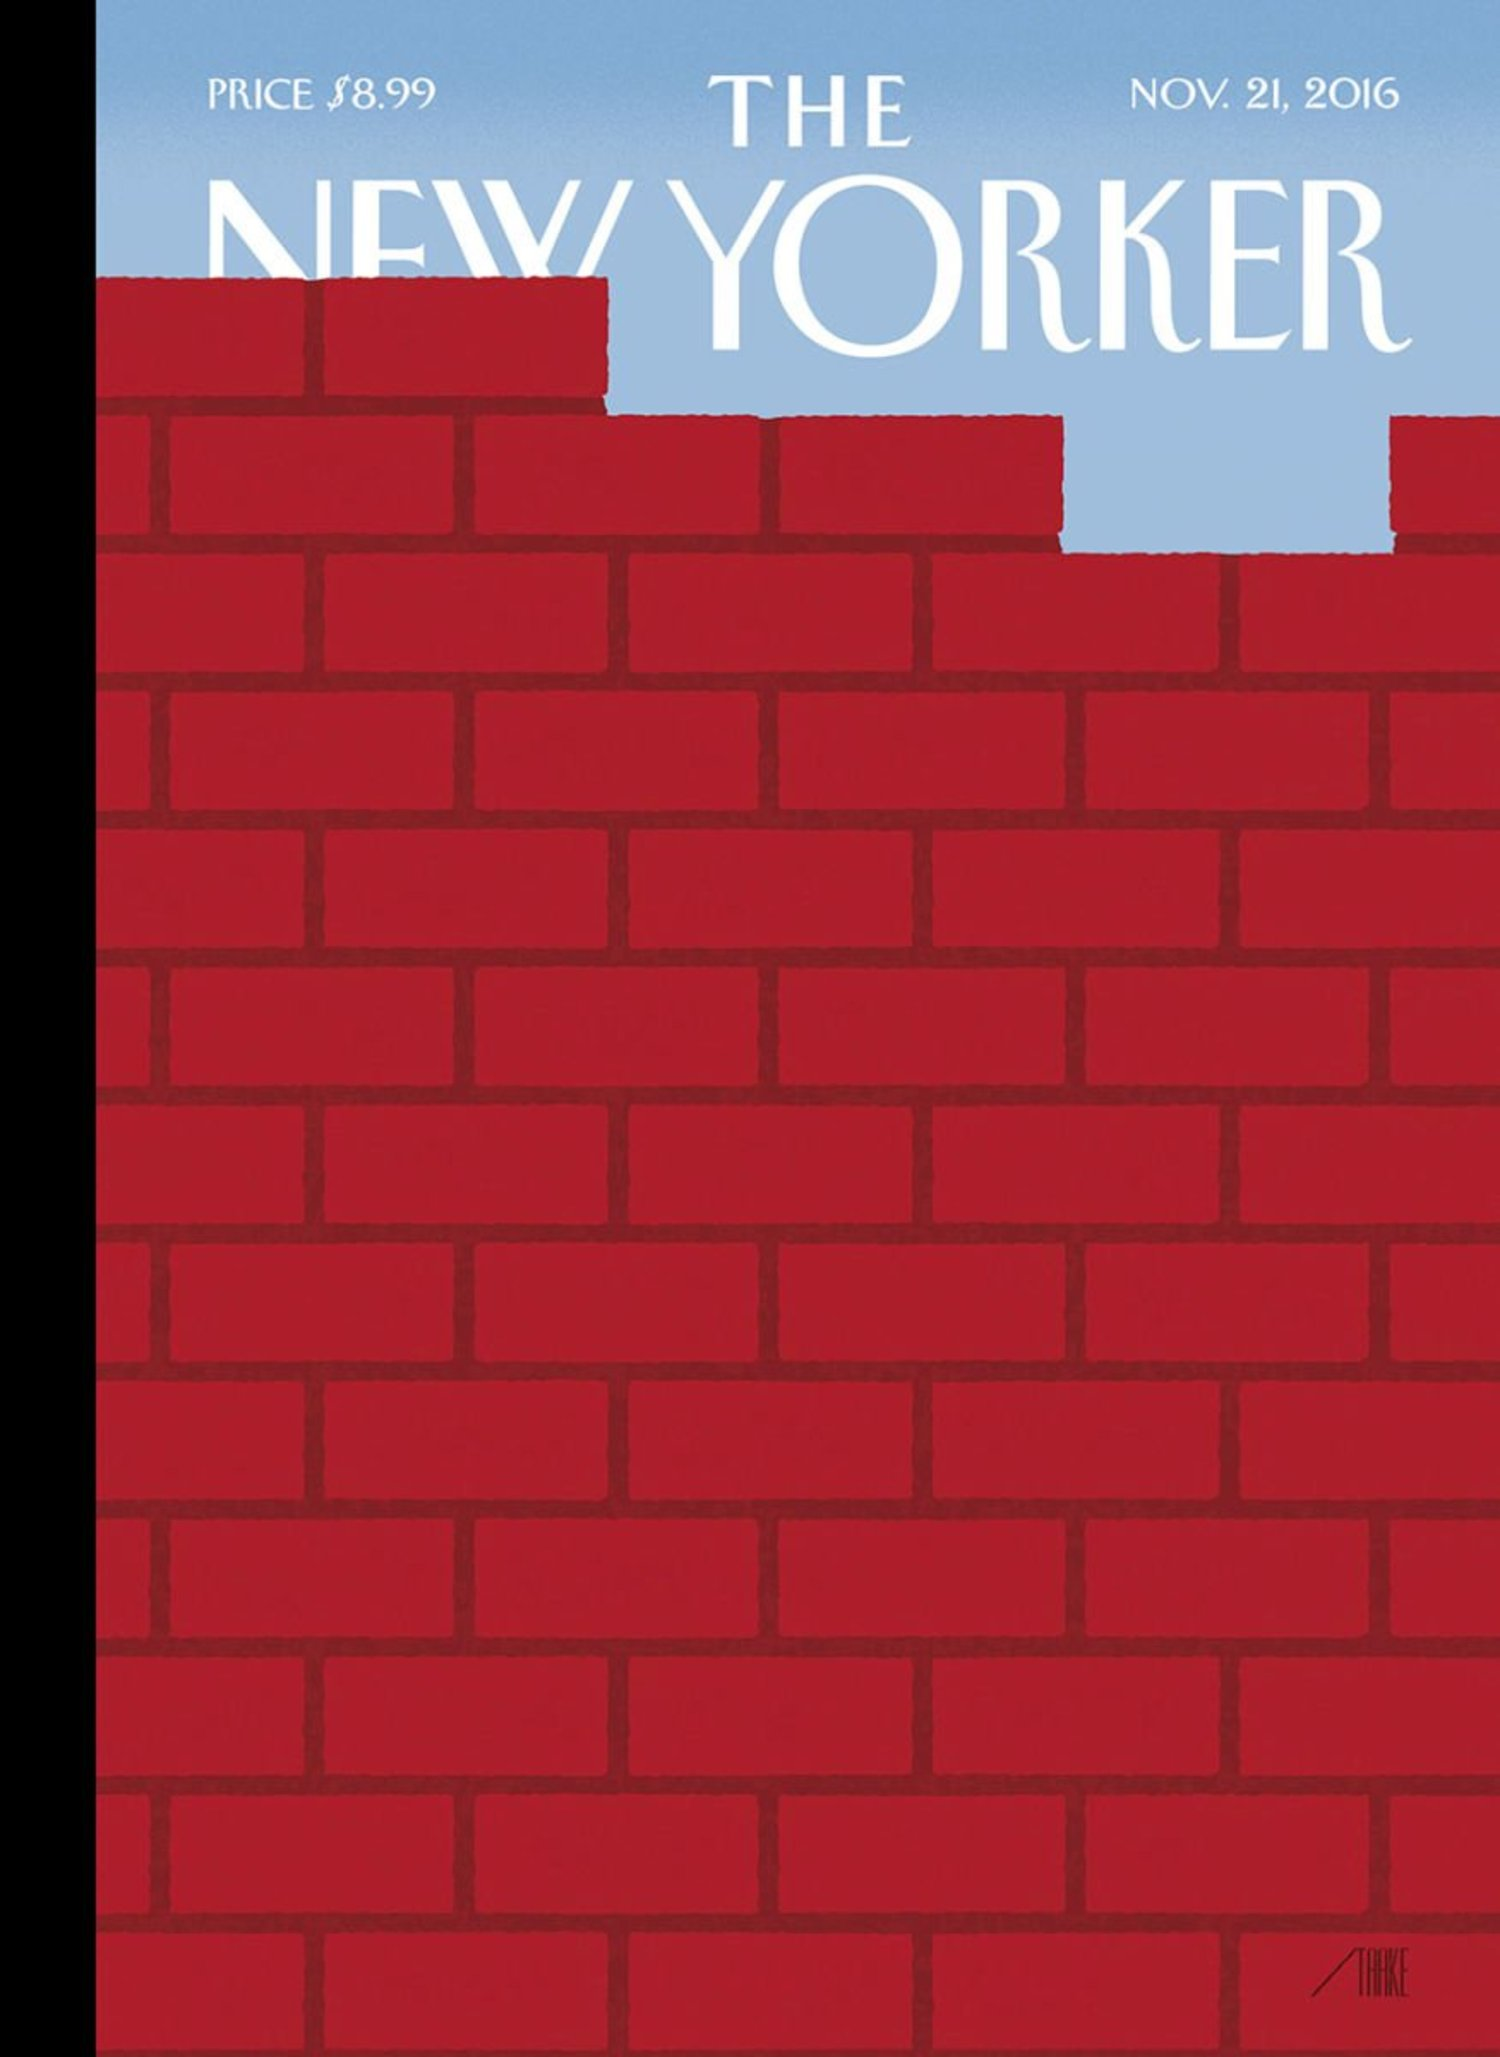 """An early look at next week's cover, """"The Wall,"""" by Bob Staake: https://t.co/f9qJvRniou https://t.co/u6RQRfQsI1"""